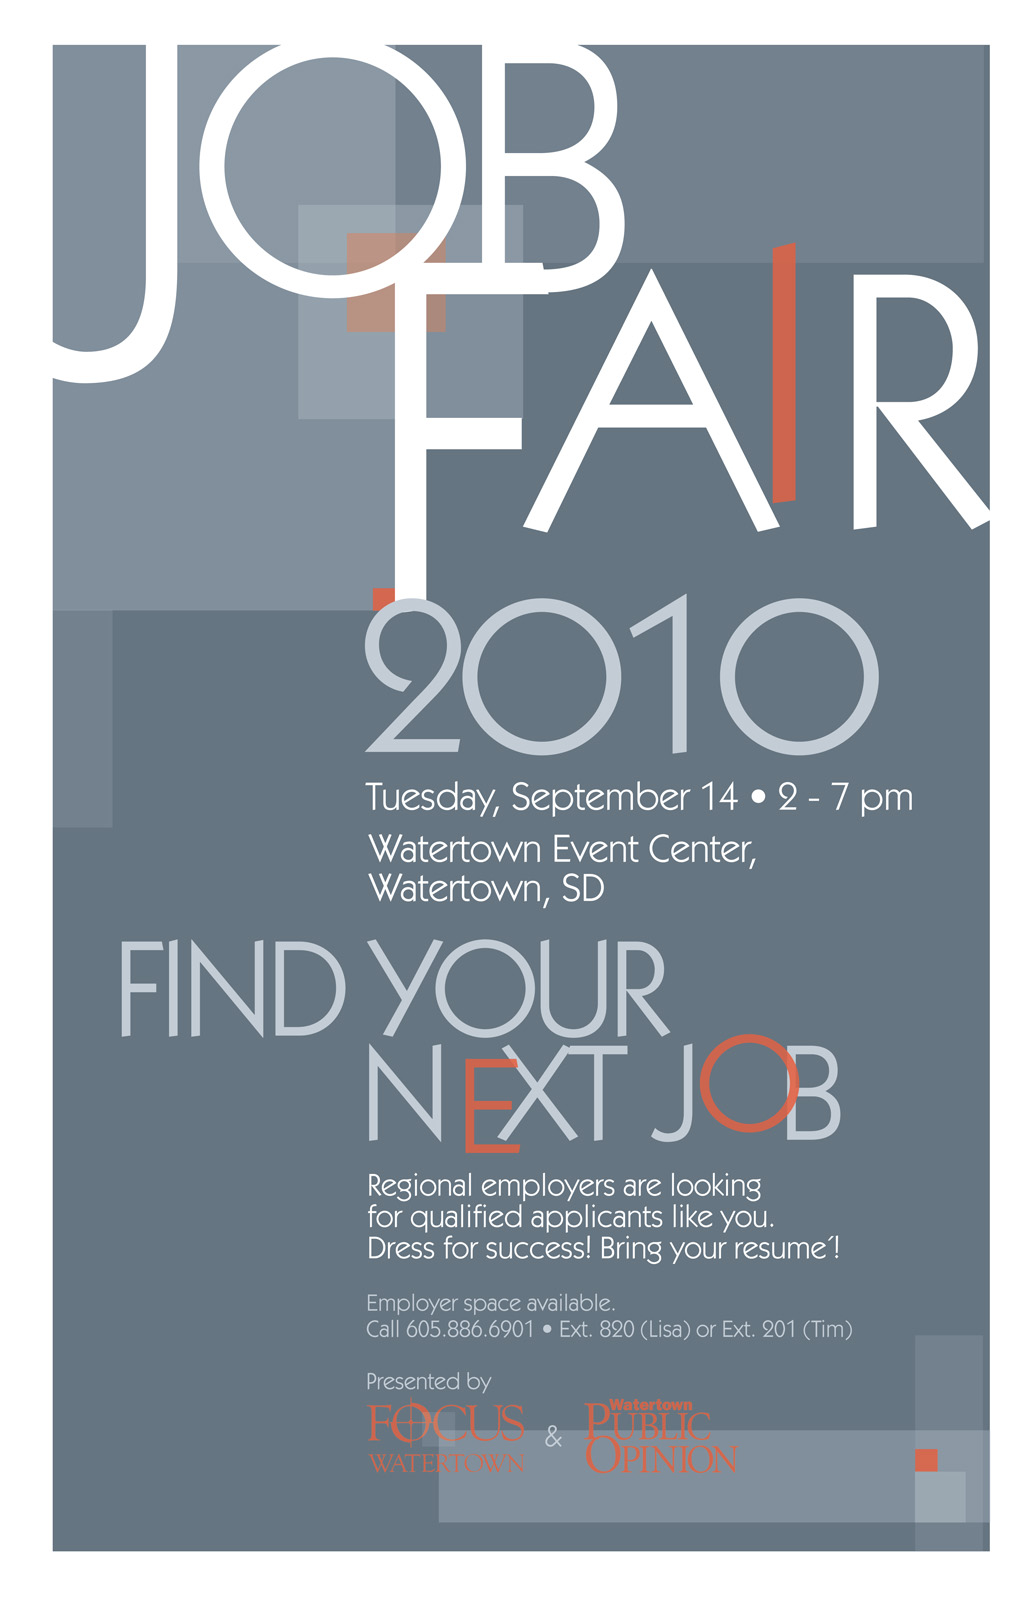 TWKeller: Job Fair 2010 Poster